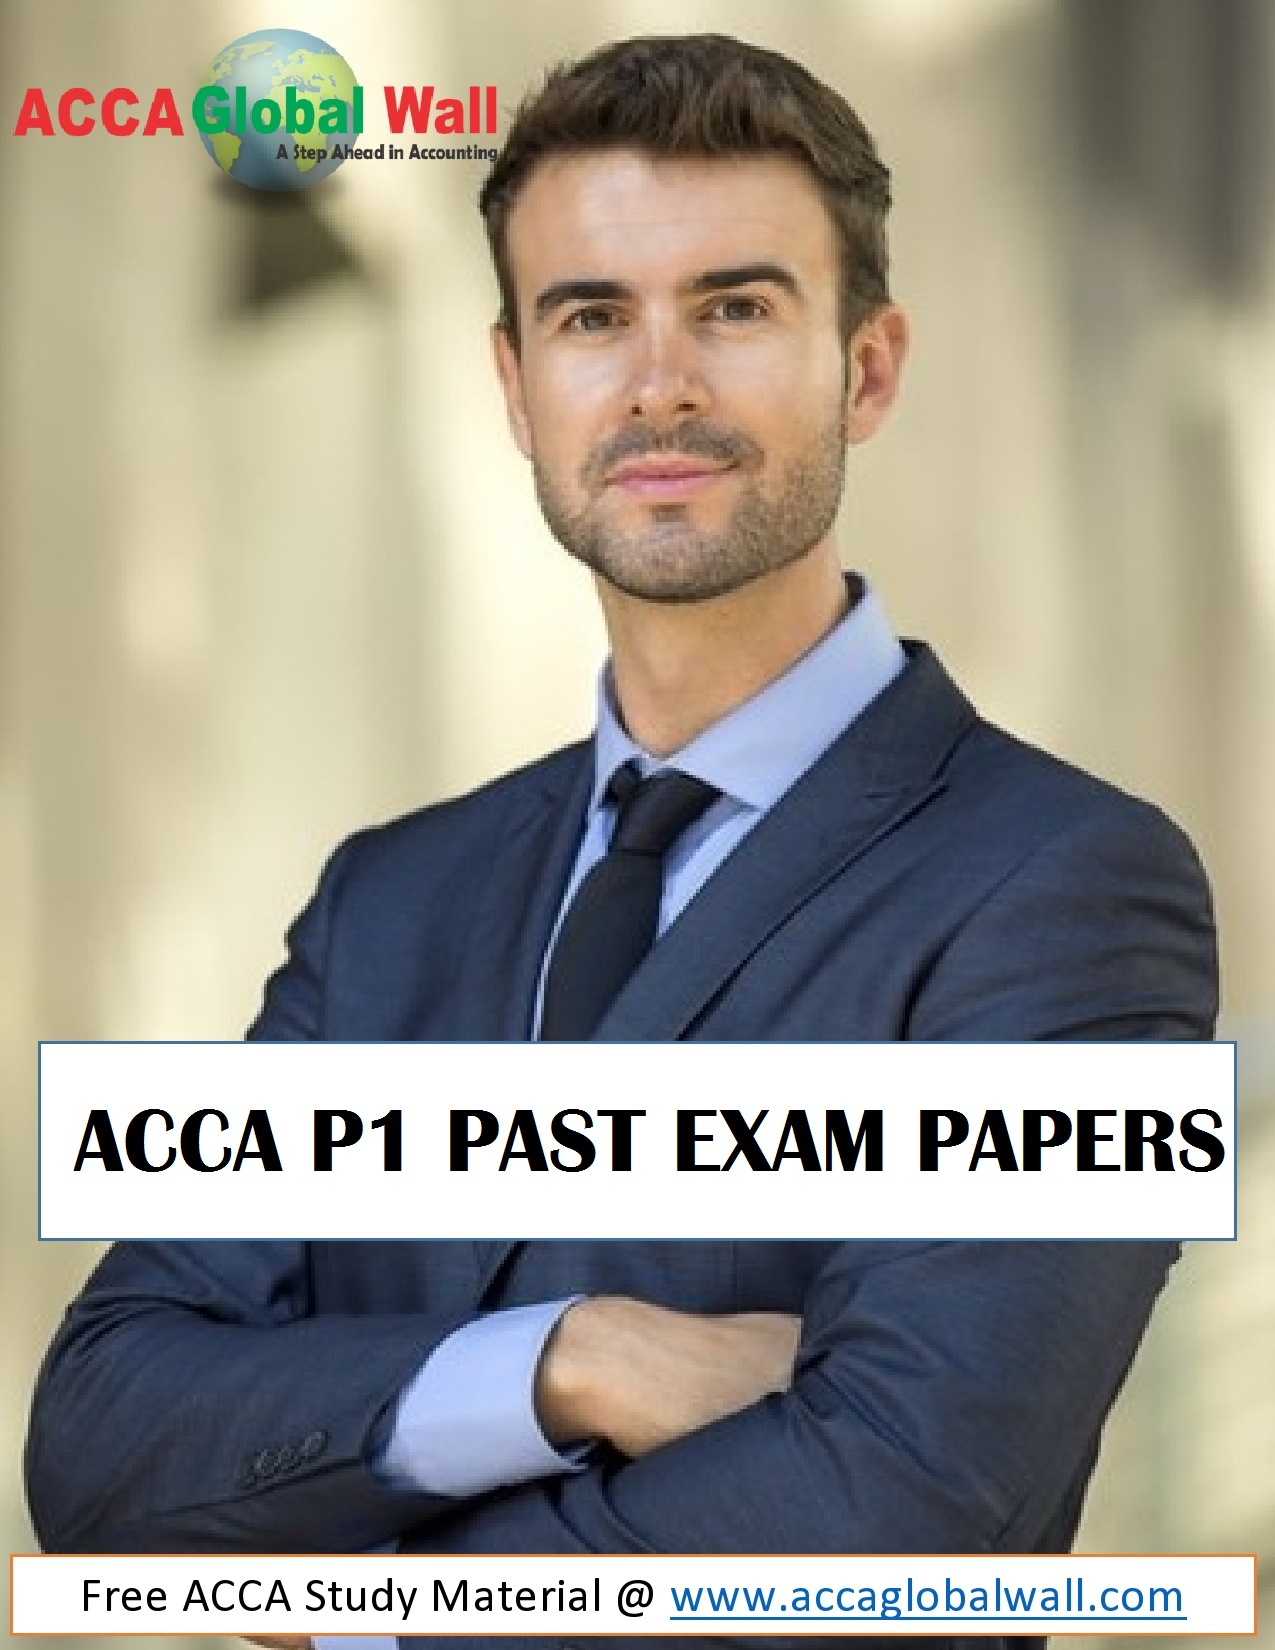 ACCA P1 Past Exam Papers in PDF